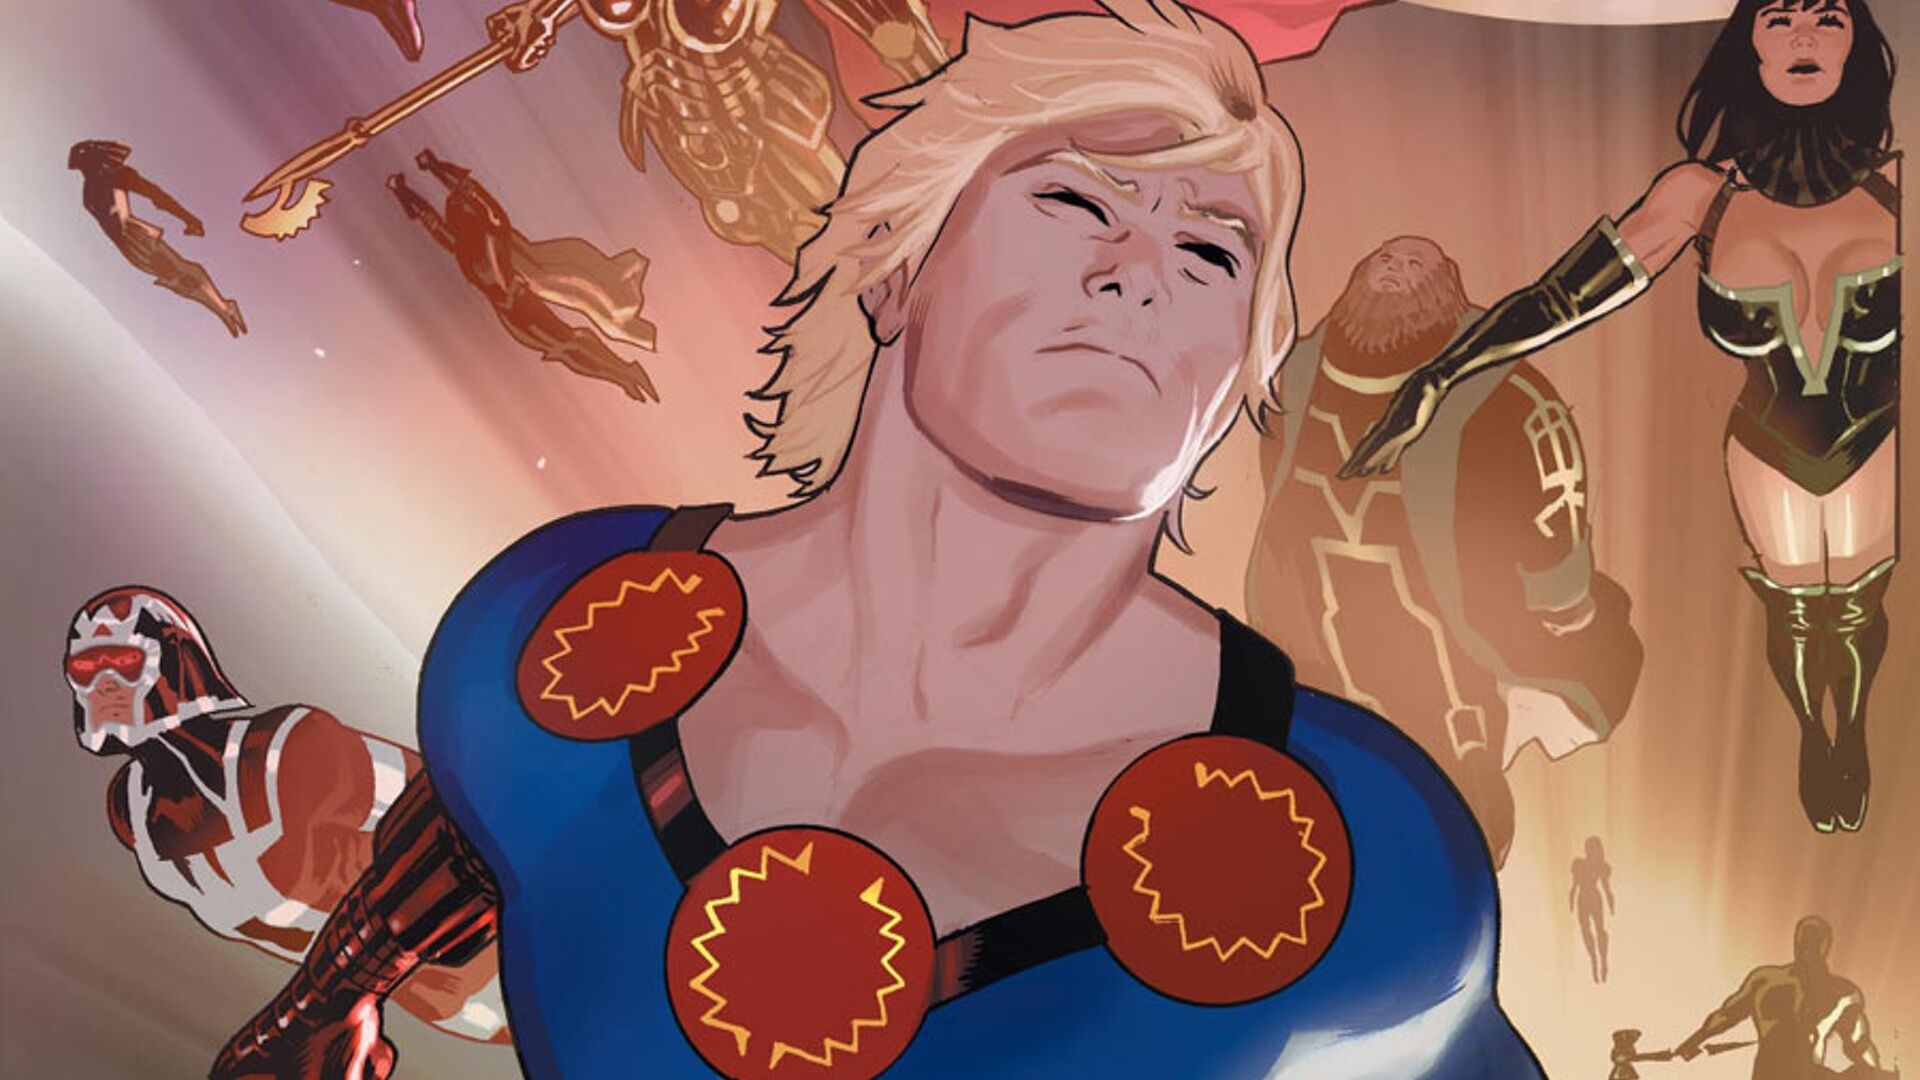 Concept art for Marvel's The Eternals has been officially revealed